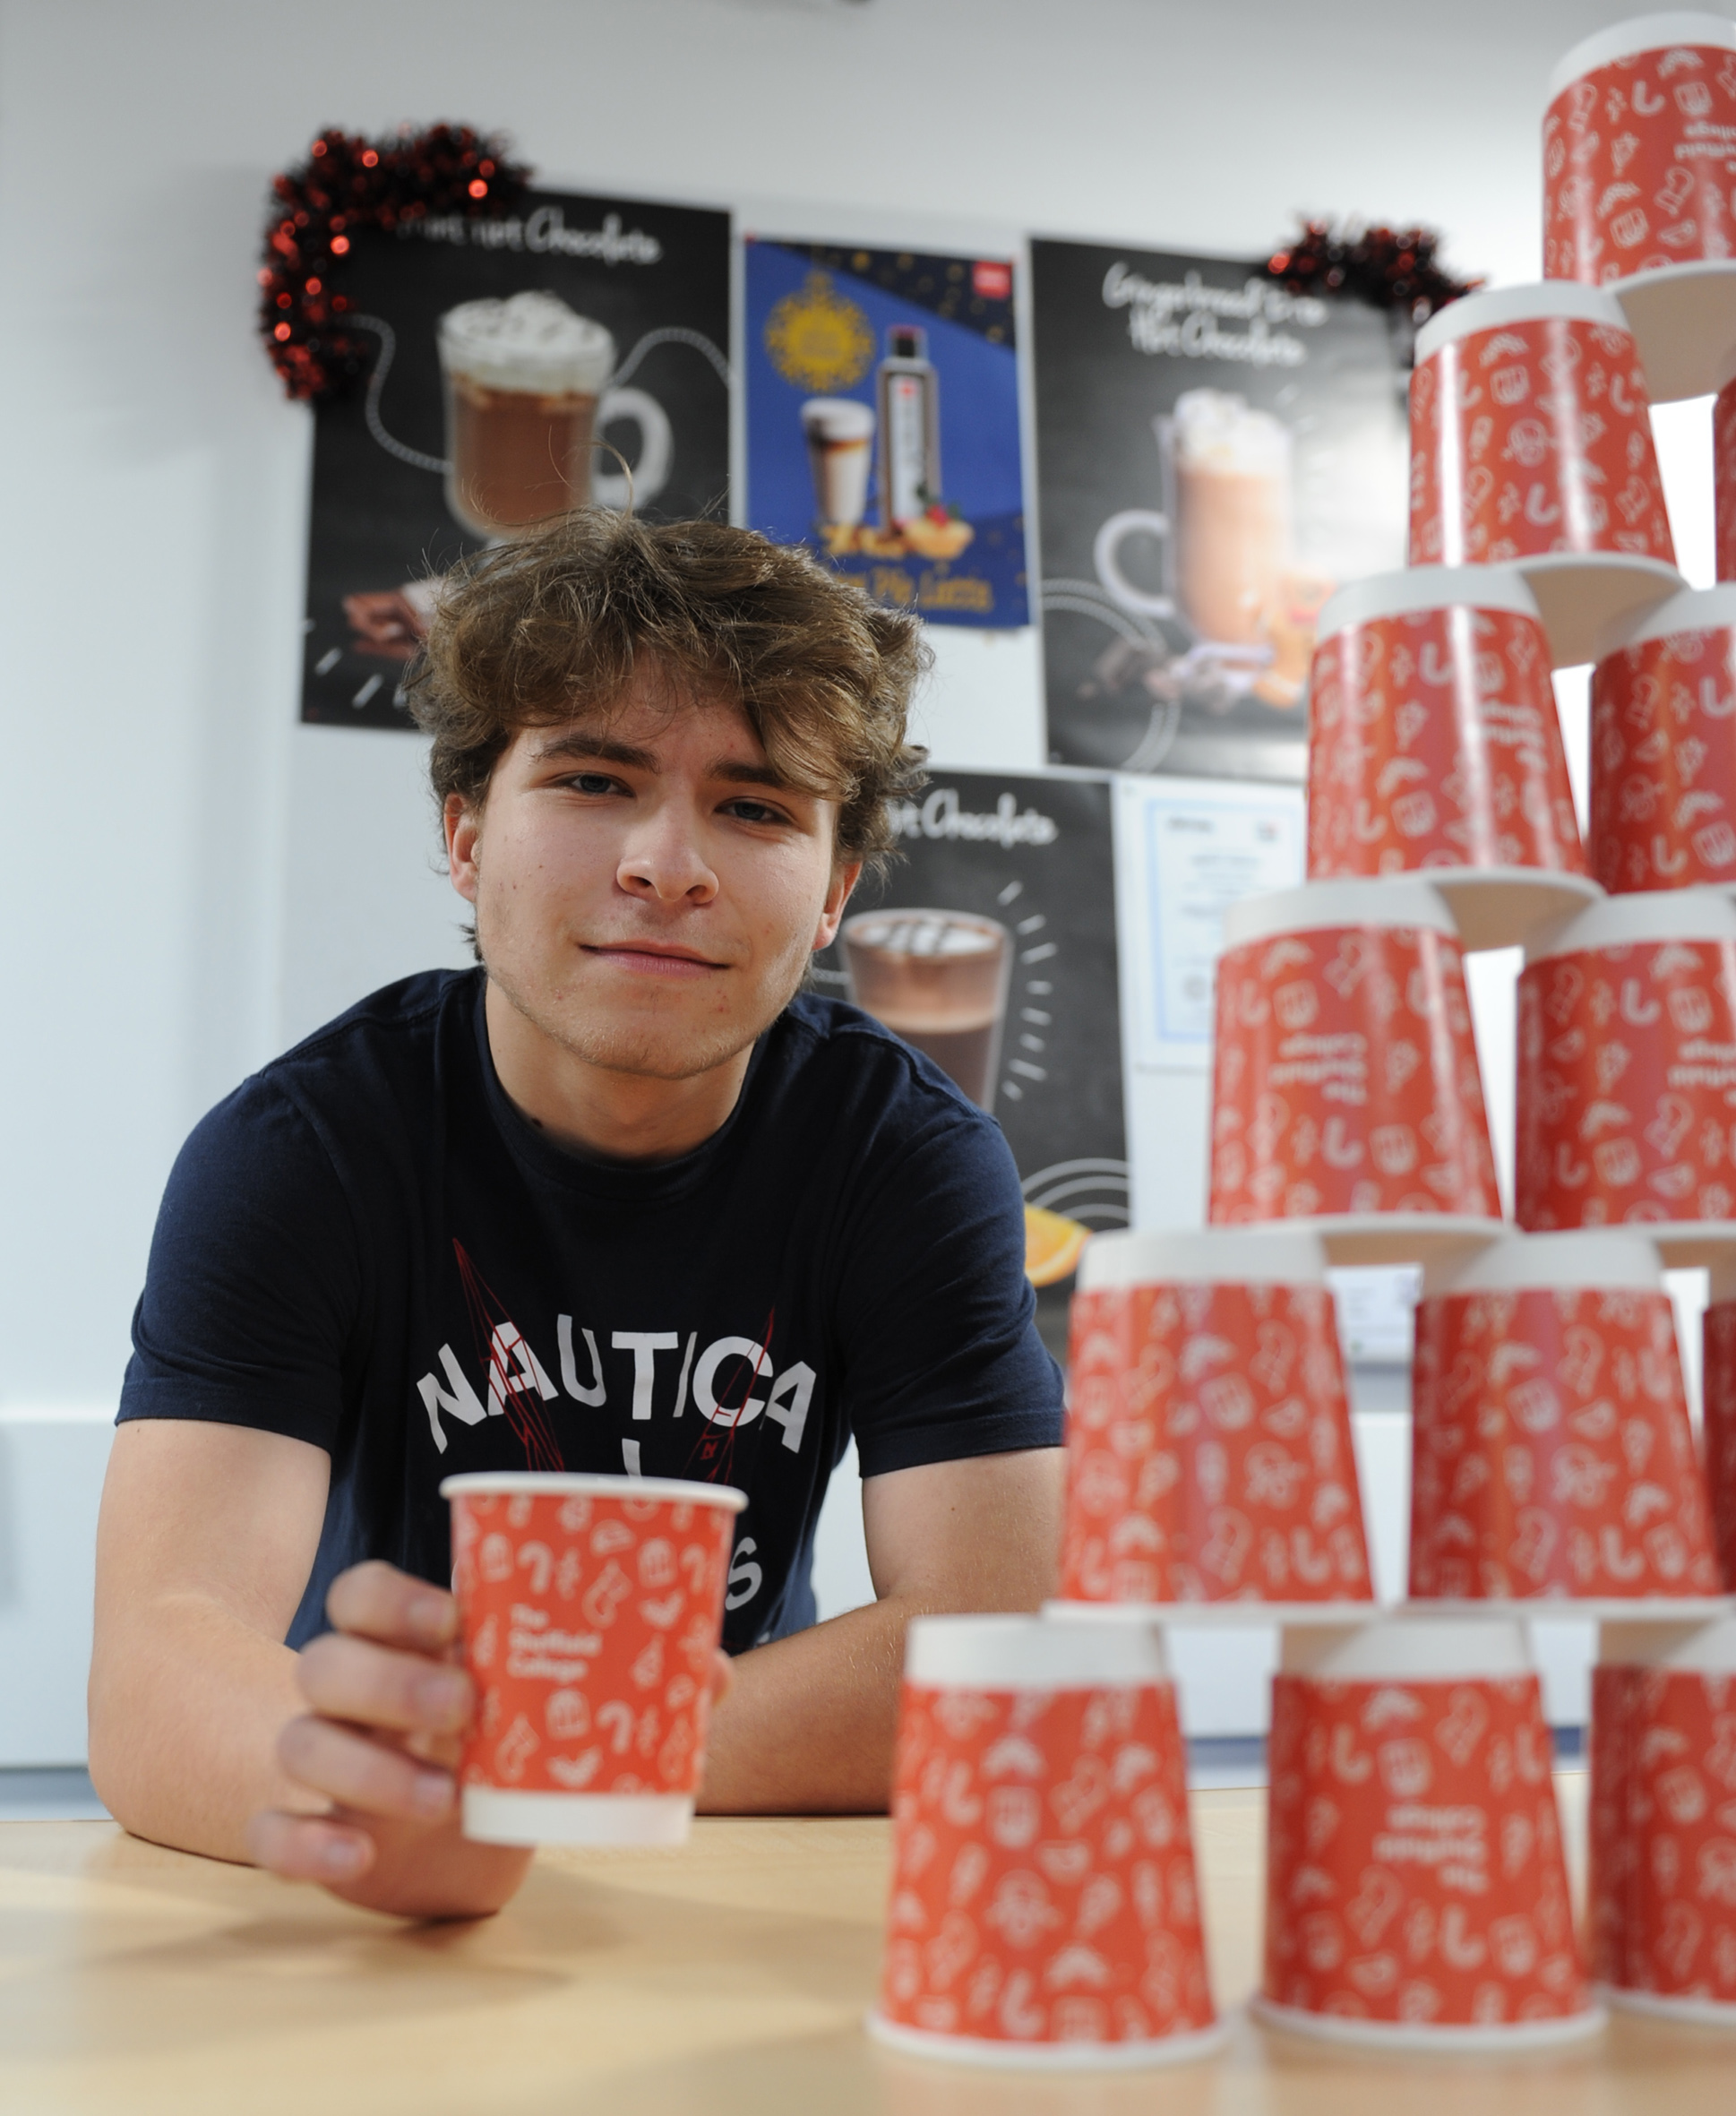 Student's Christmas Cup Design Brings Festive Cheer